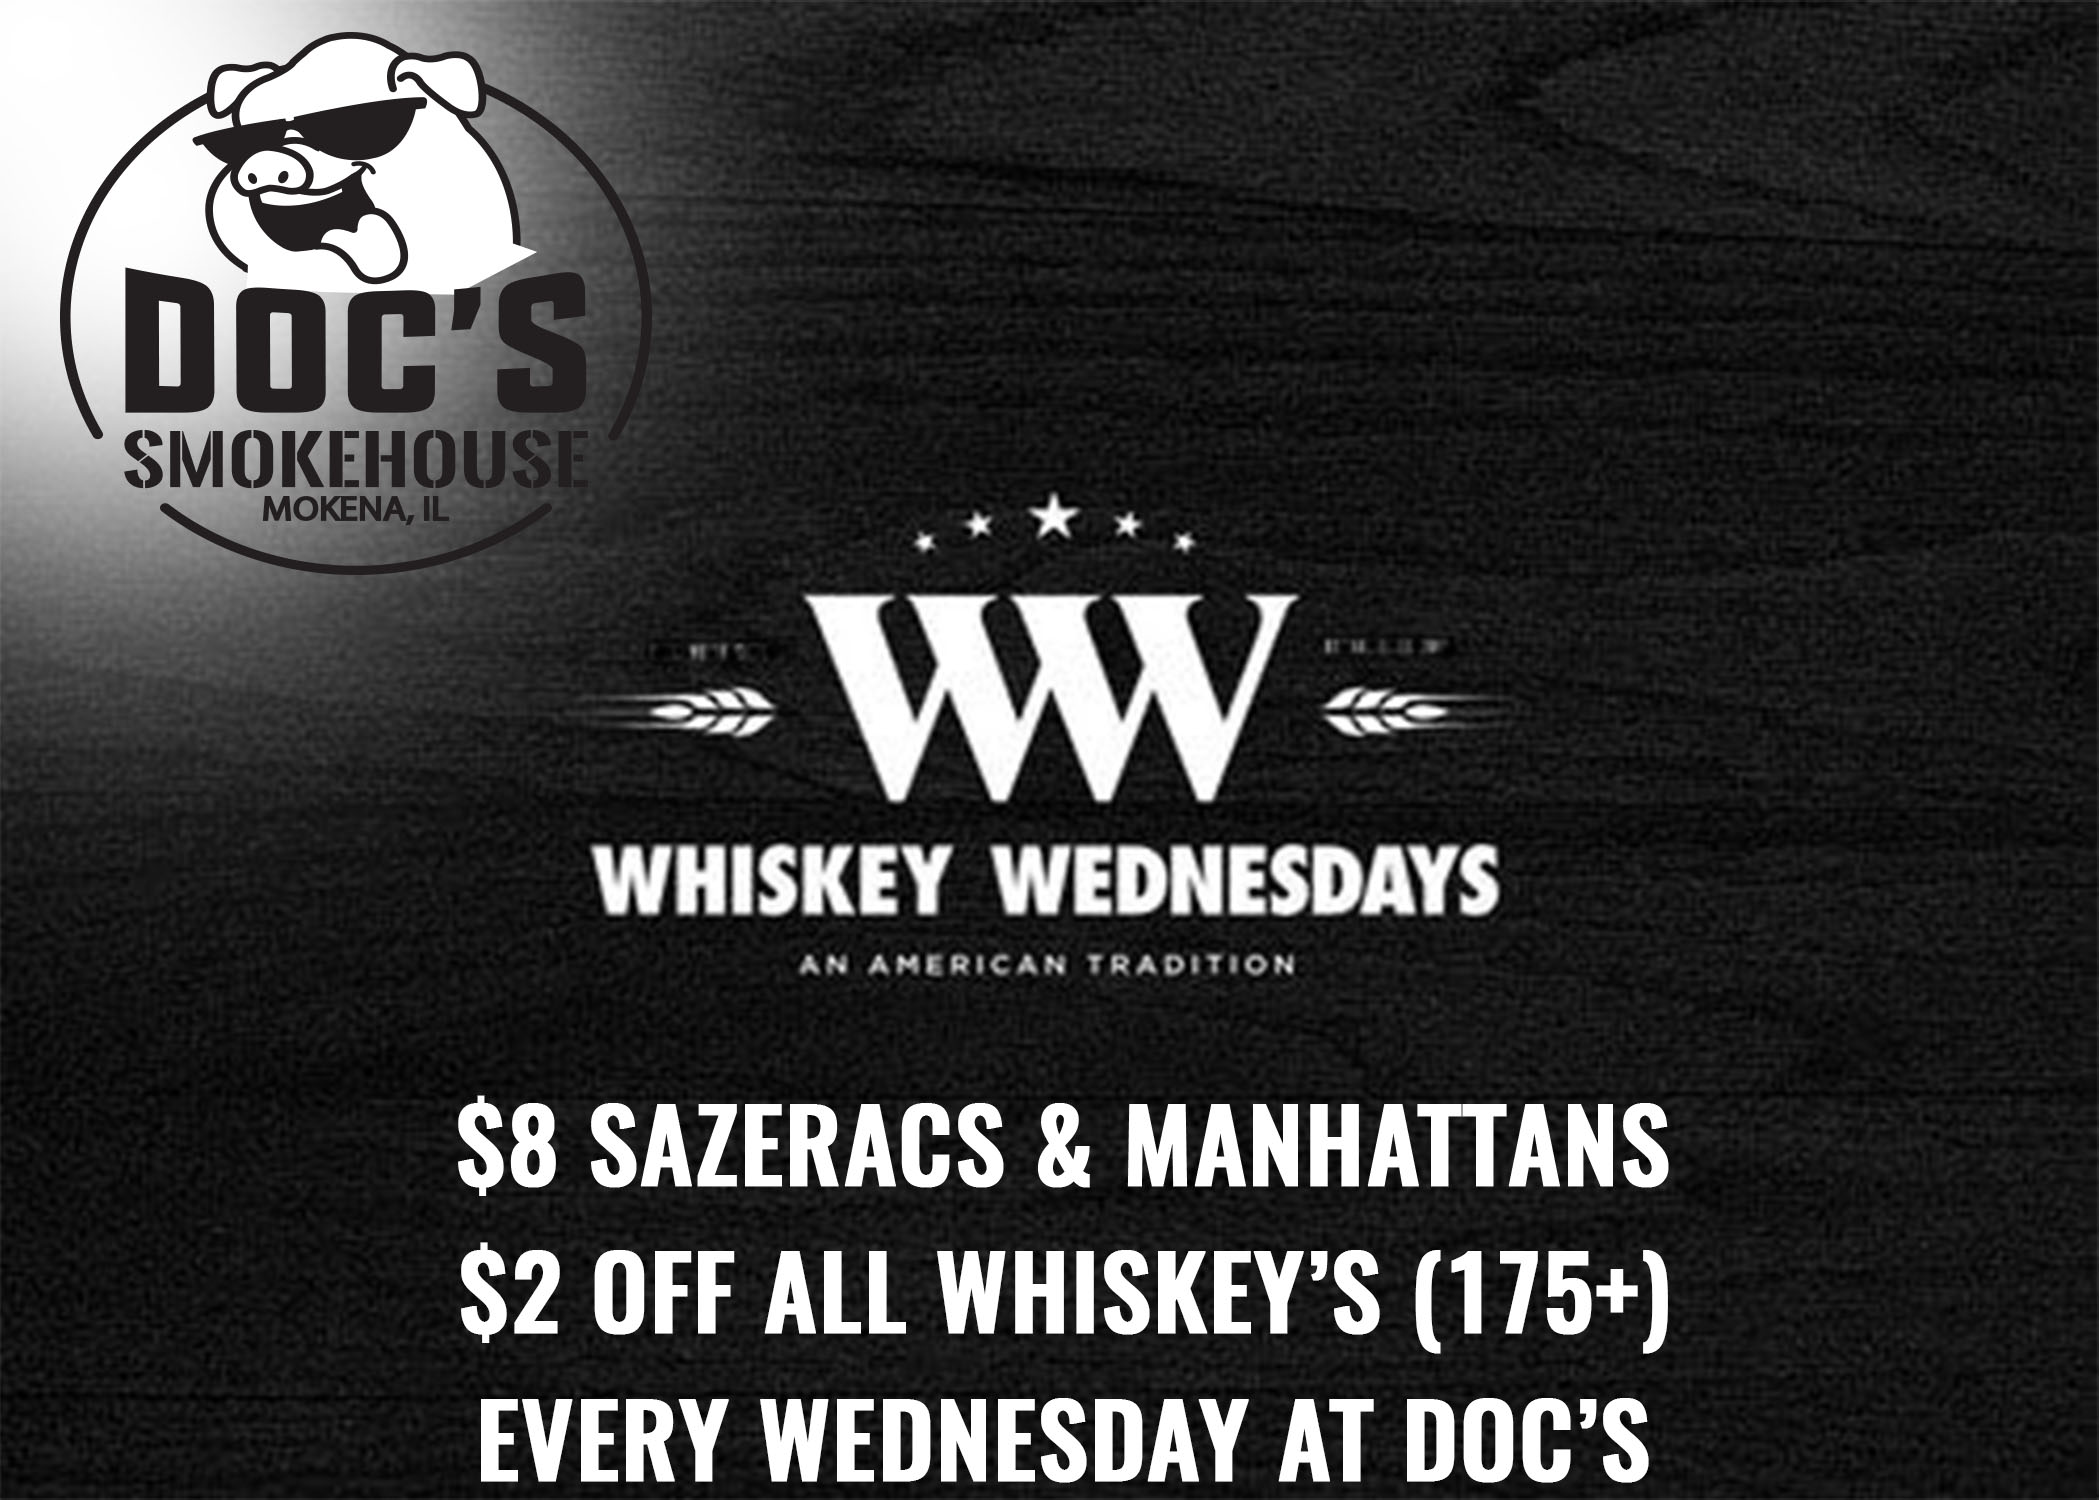 DOCS WHISKEY WEDNESDAY JPG FIX.jpg